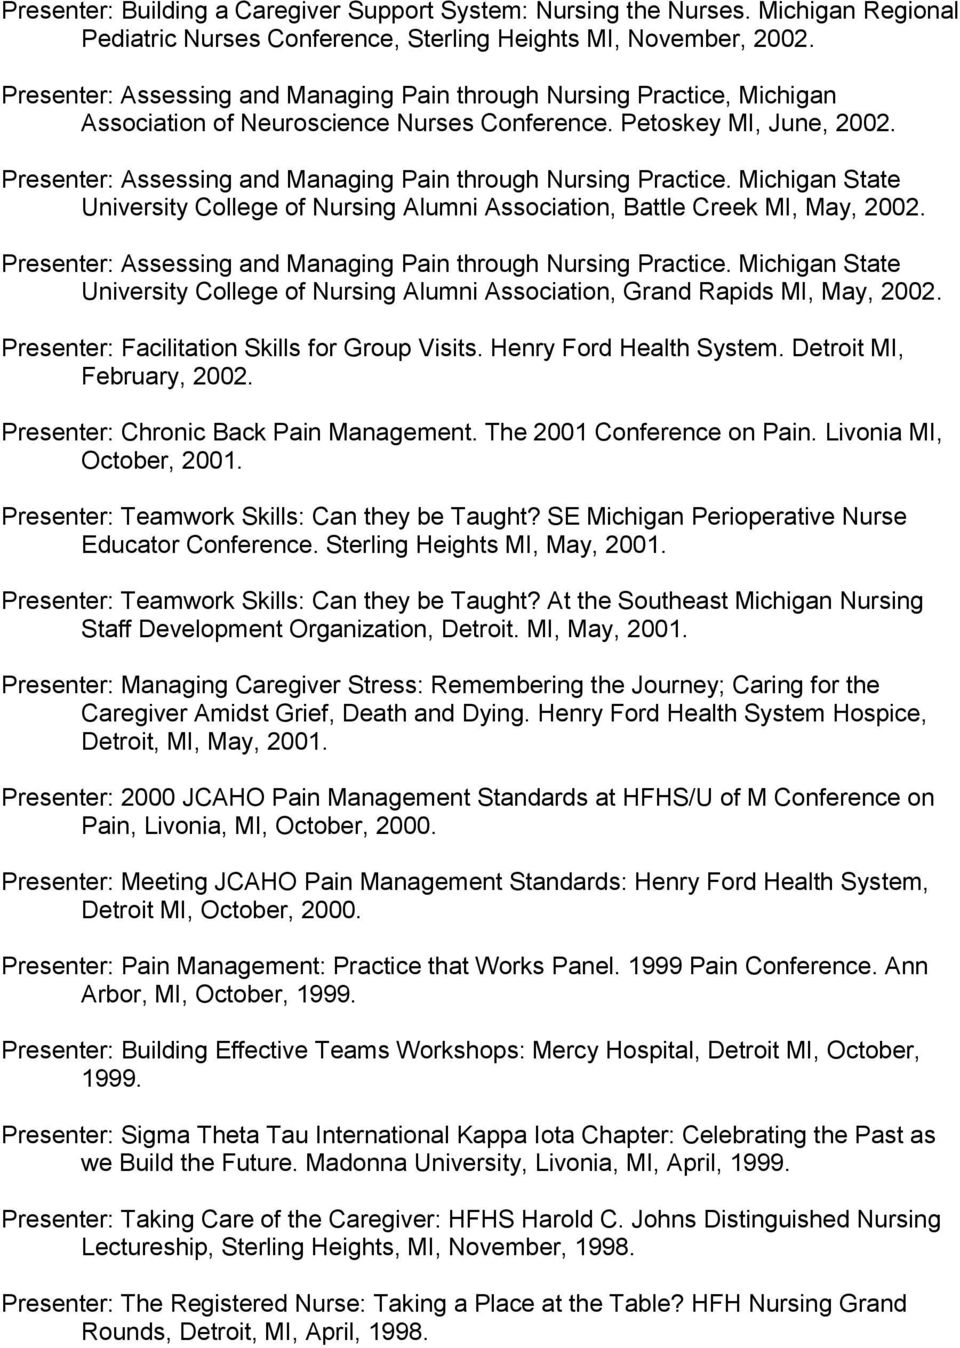 Presenter: Assessing and Managing Pain through Nursing Practice. Michigan State University College of Nursing Alumni Association, Battle Creek MI, May, 2002.